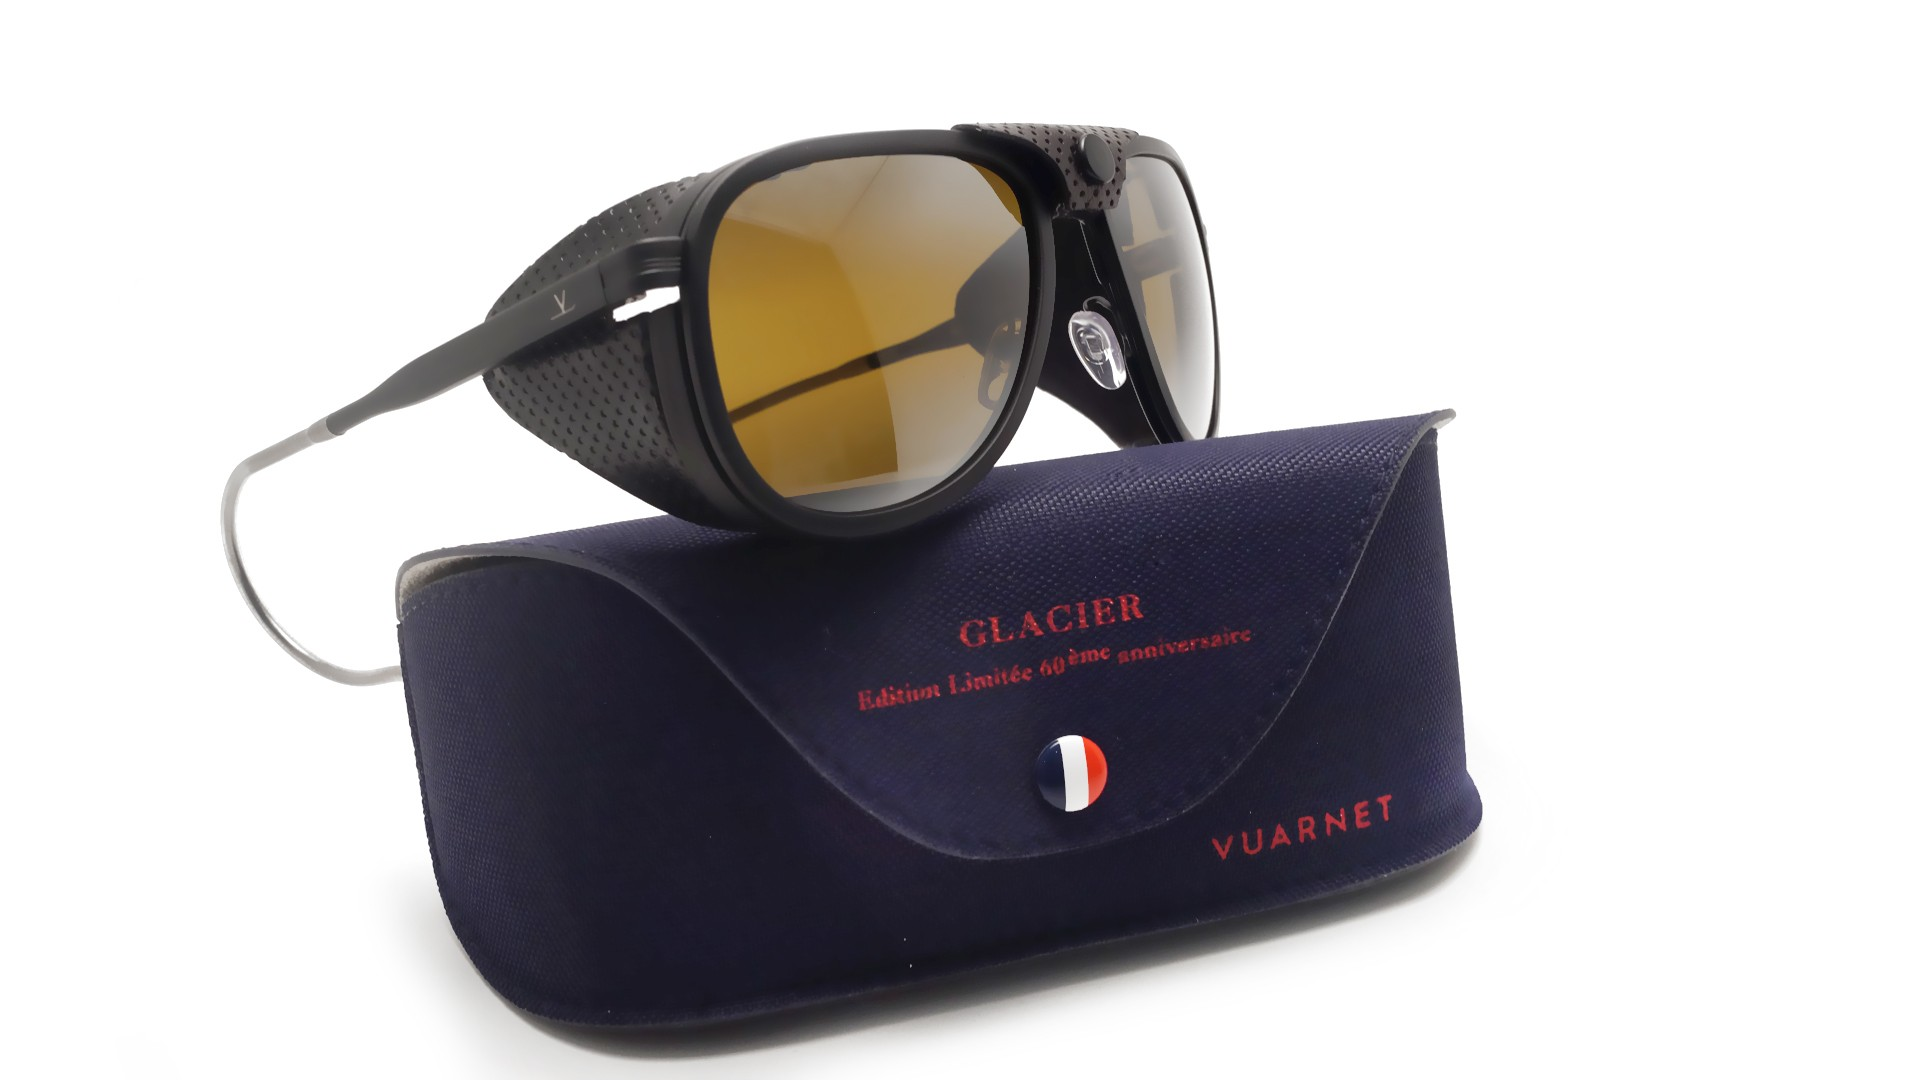 1c8d3334f5be8 Sunglasses Vuarnet Glacier 1957 Black Matte VL1315 0010 57-17 Skilynx  Medium Mirror